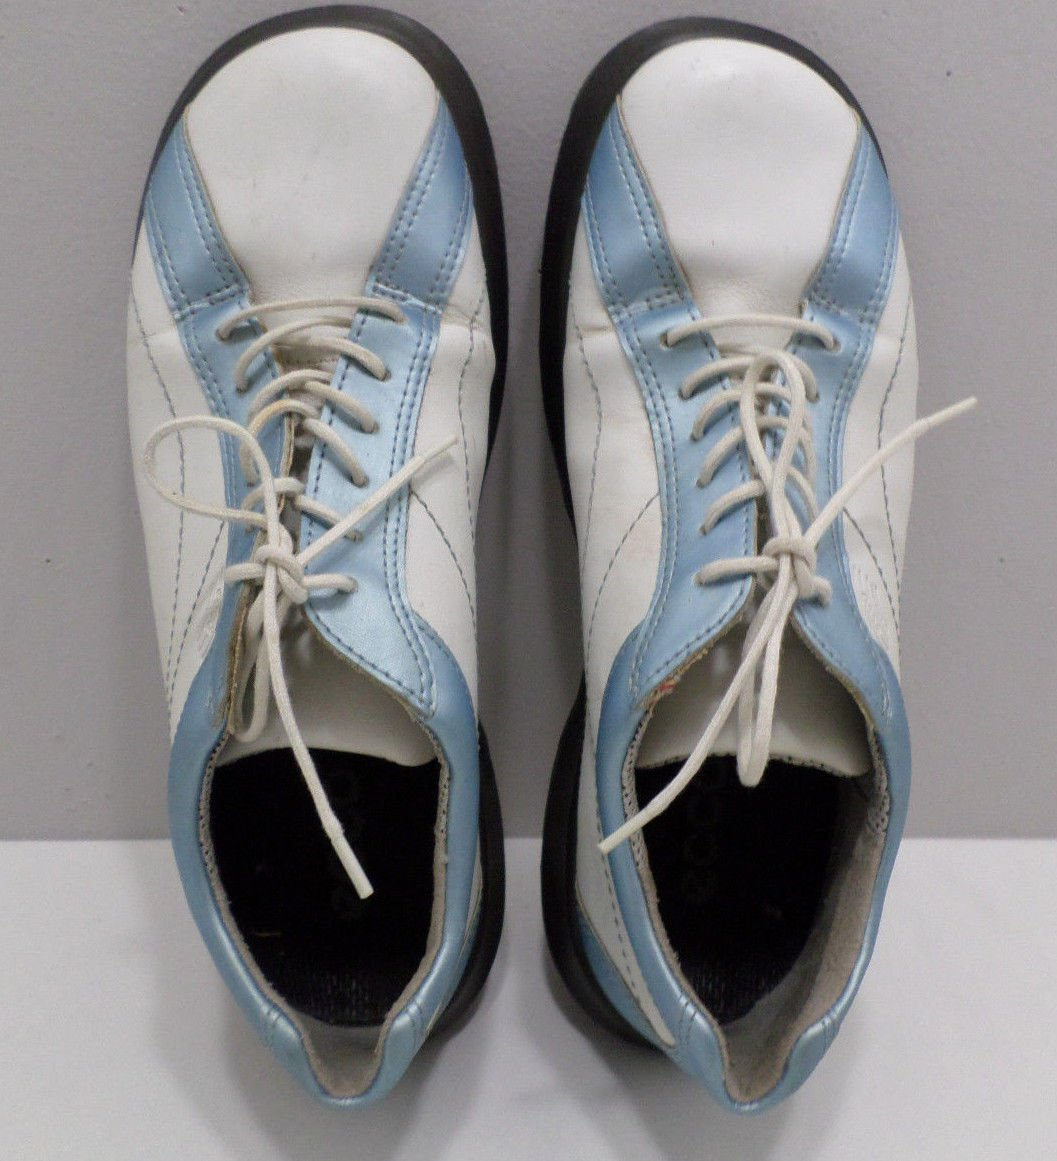 Women's Golf Shoes Leather size EUR 38 US 7 - 7 1/2 by Ecco Hydromax